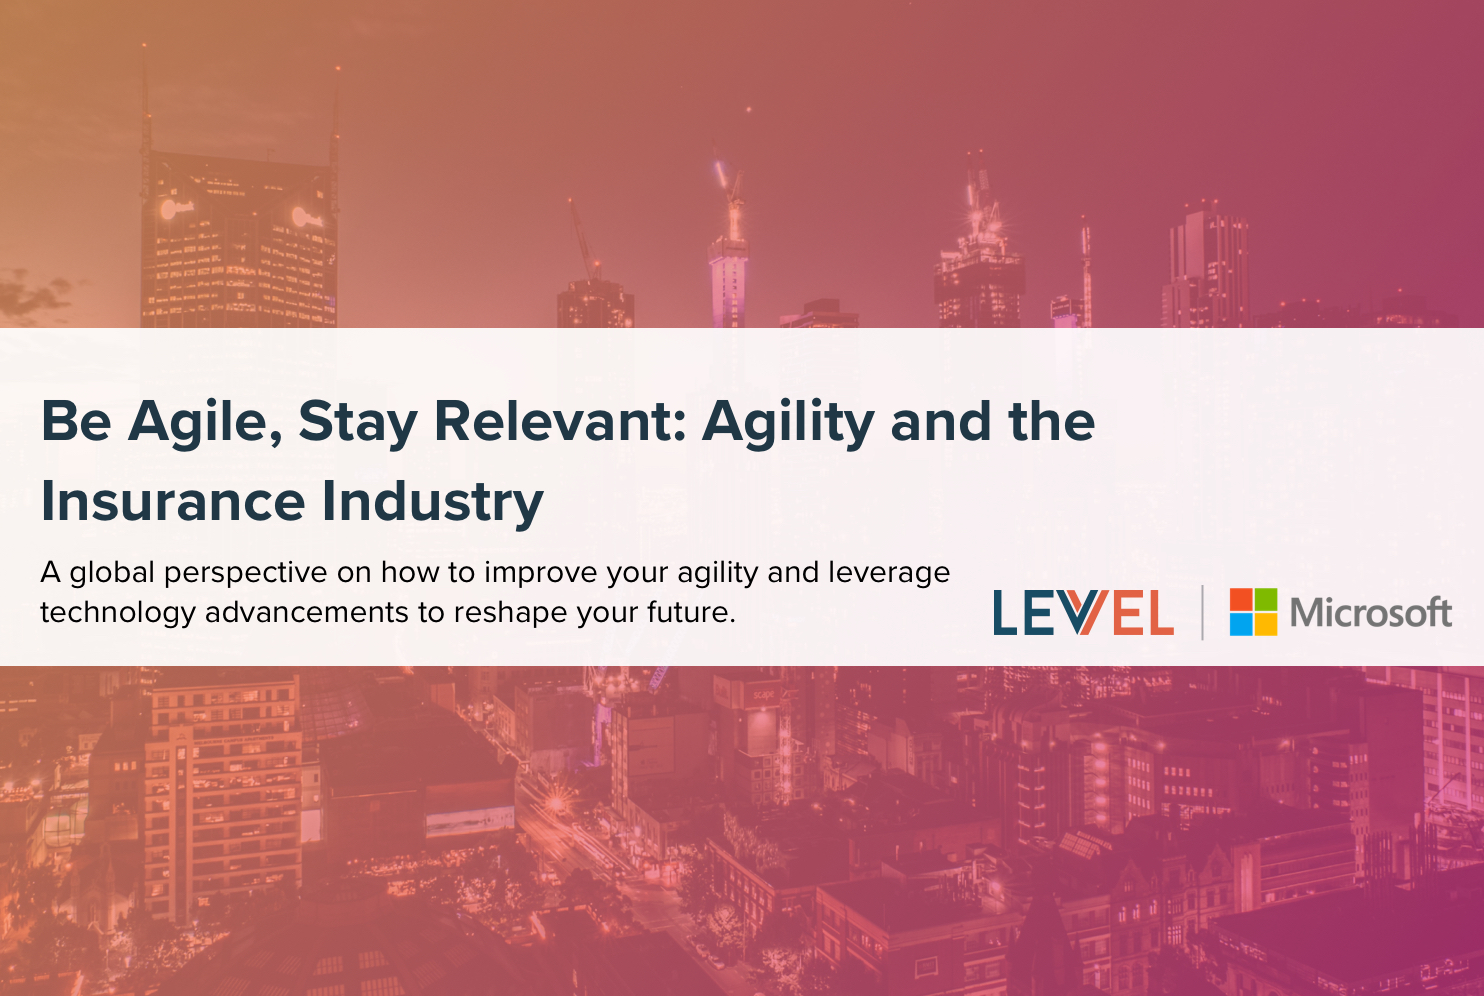 Be Agile, Stay Relevant: Agility and the Insurance Industry